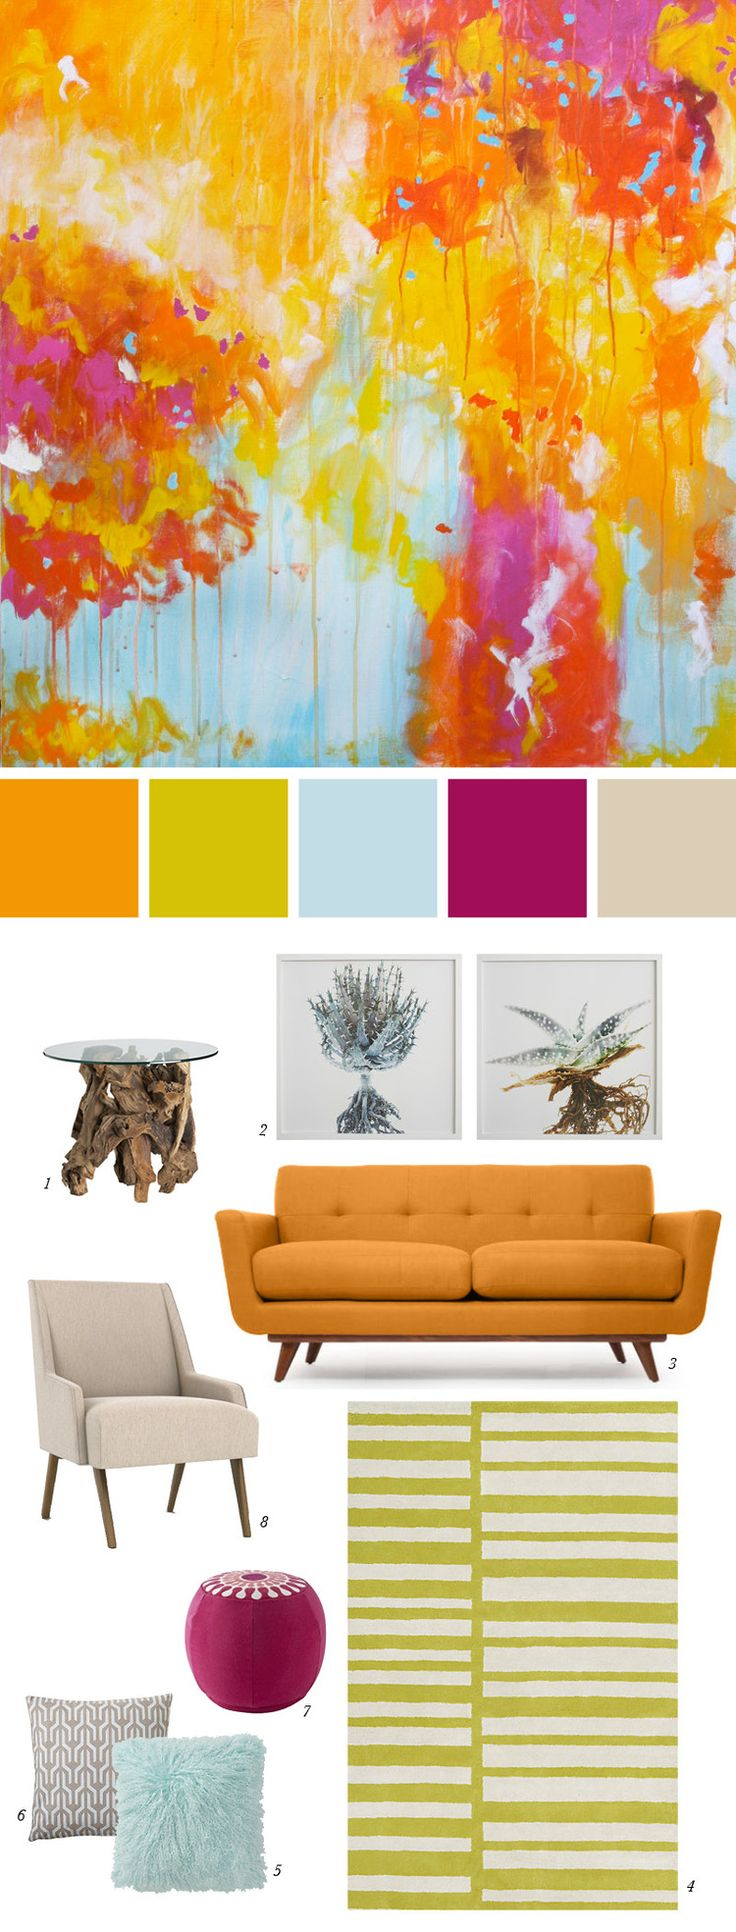 Create a bold and invigorating space with colors inspired by this vibrant  abstract painting.   Inspiration Image: Confetti by Christine Soccio 1. Driftwood Side Table from Crate & Barrel 2. Clinton Fredman Wall Art from West Elm 3. Nixon Loveseat from Thrive Home Furnishings 4. Keys Rug